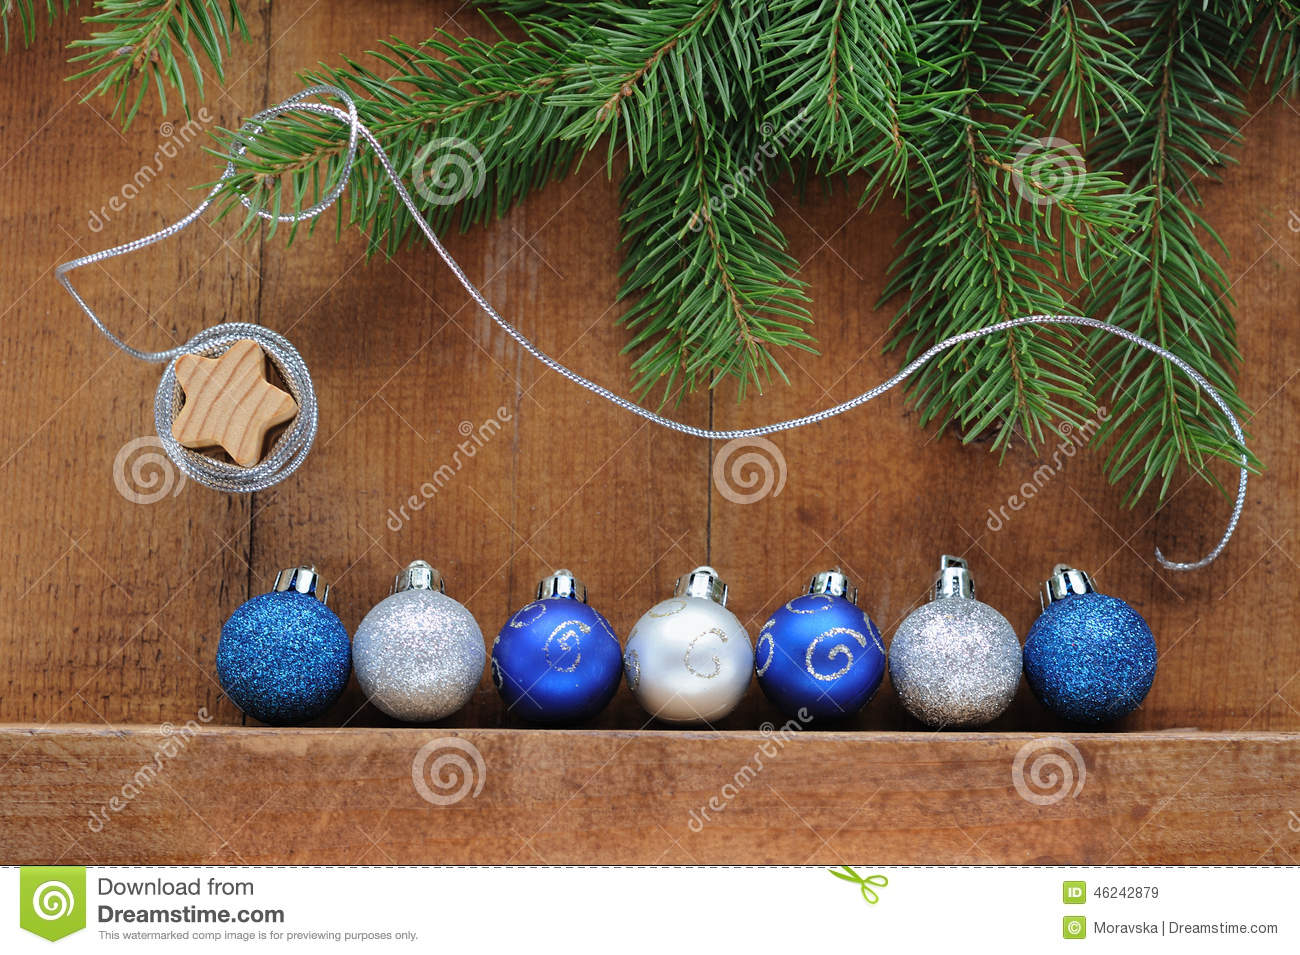 Christmas Card with decorations - silver thread, xmas tree and color balls.